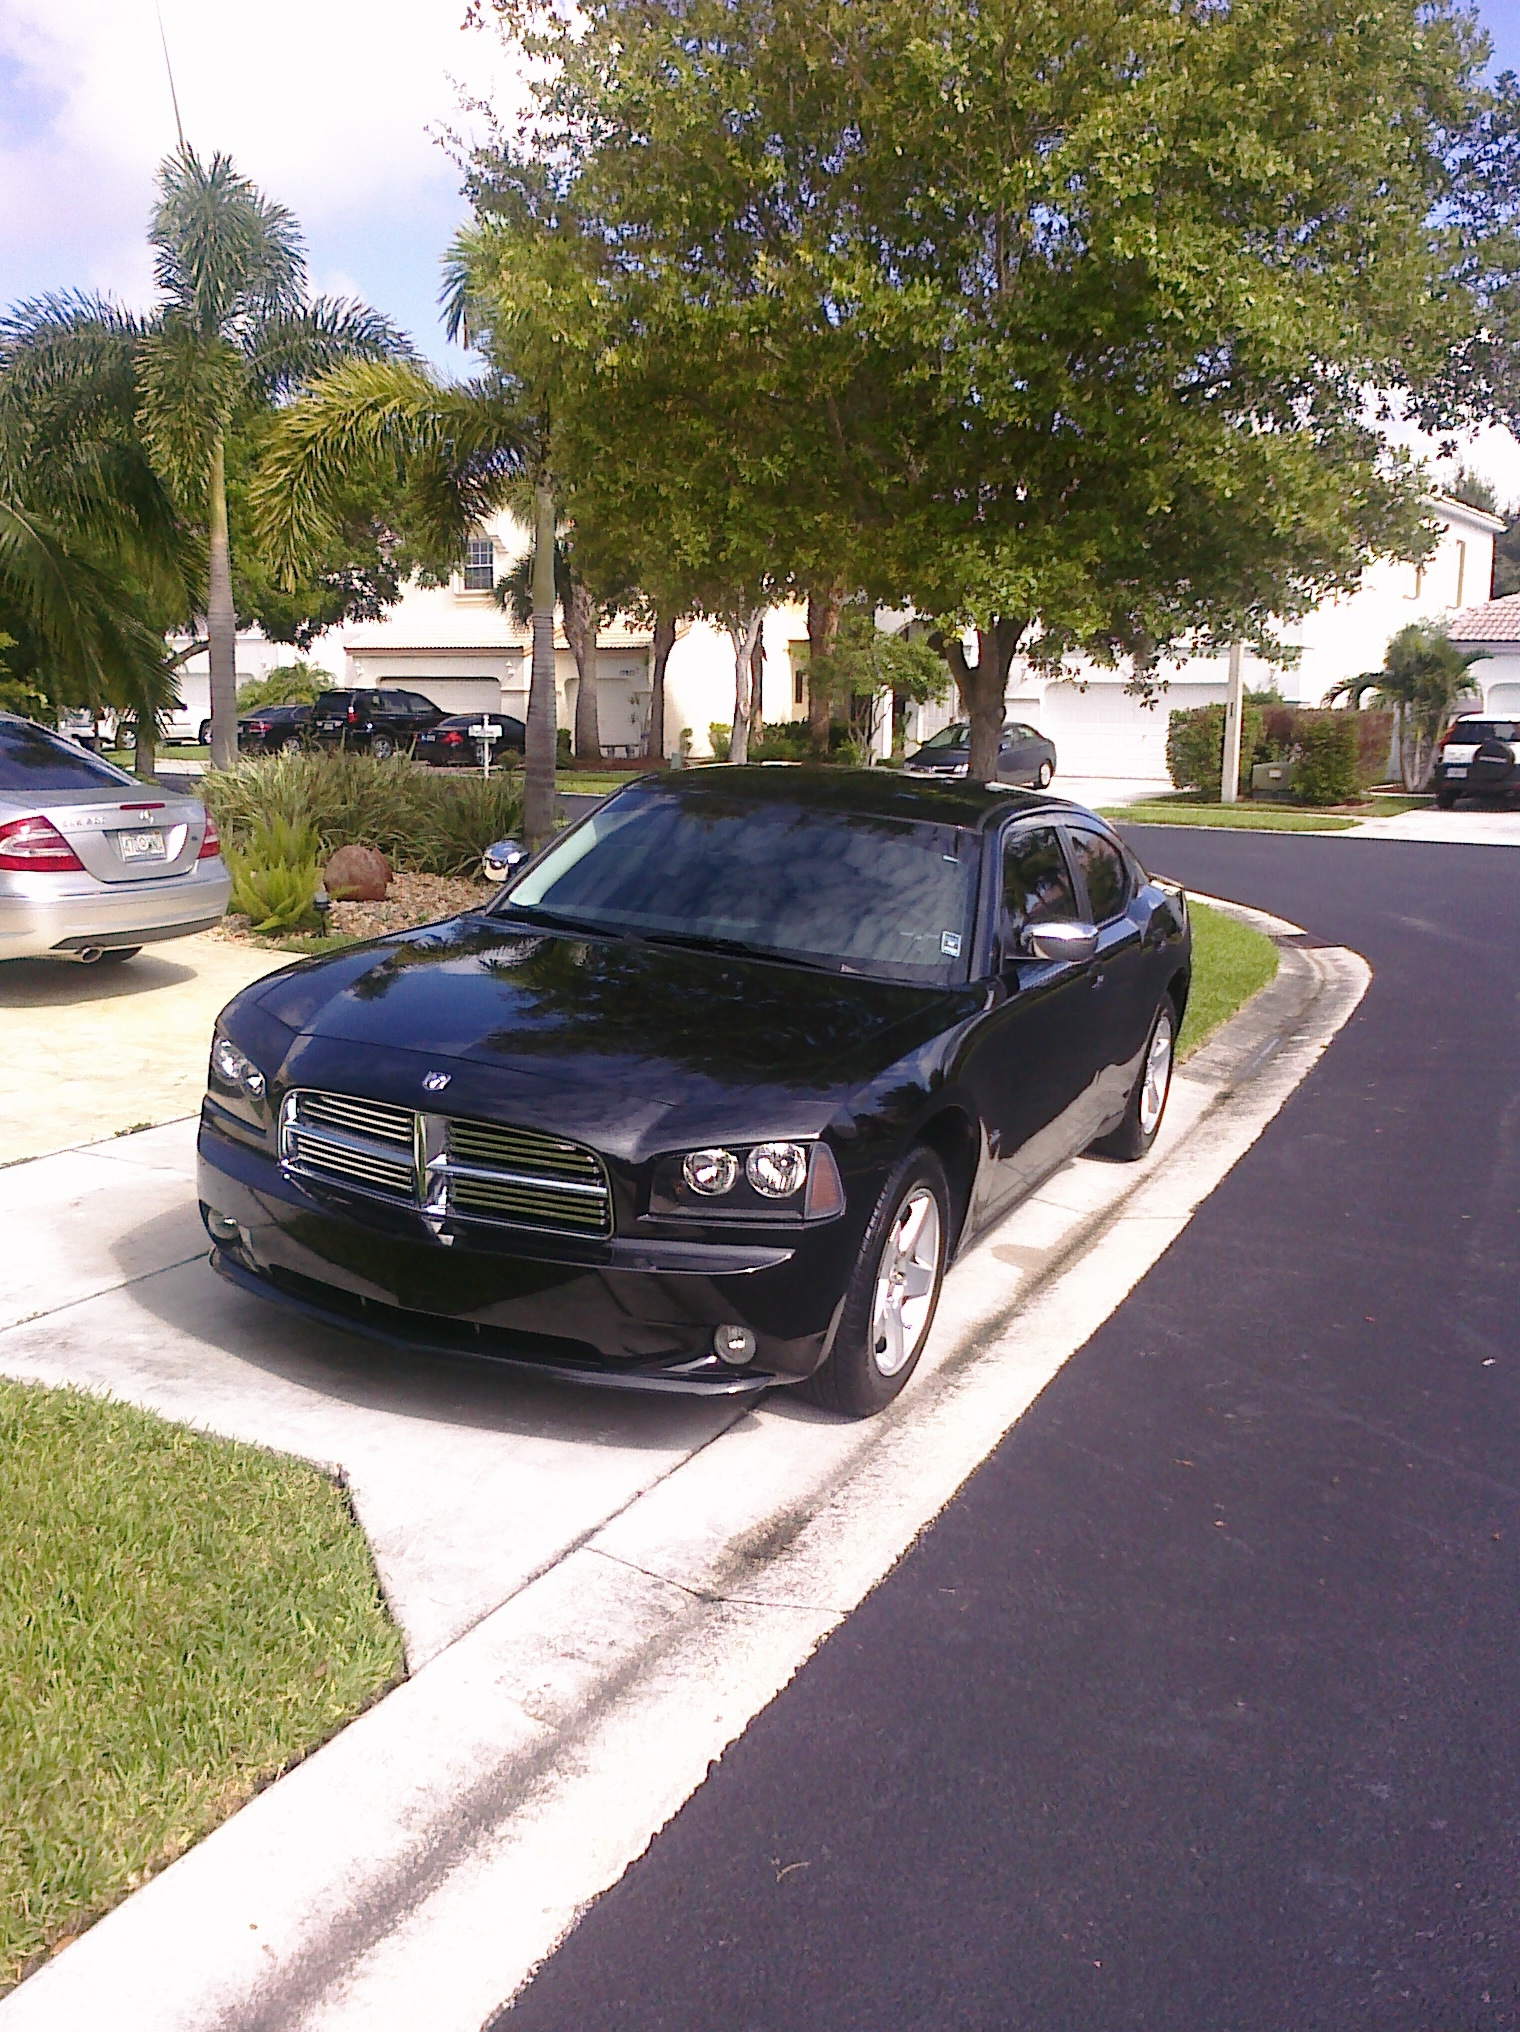 lurchjr's 2009 Dodge Charger